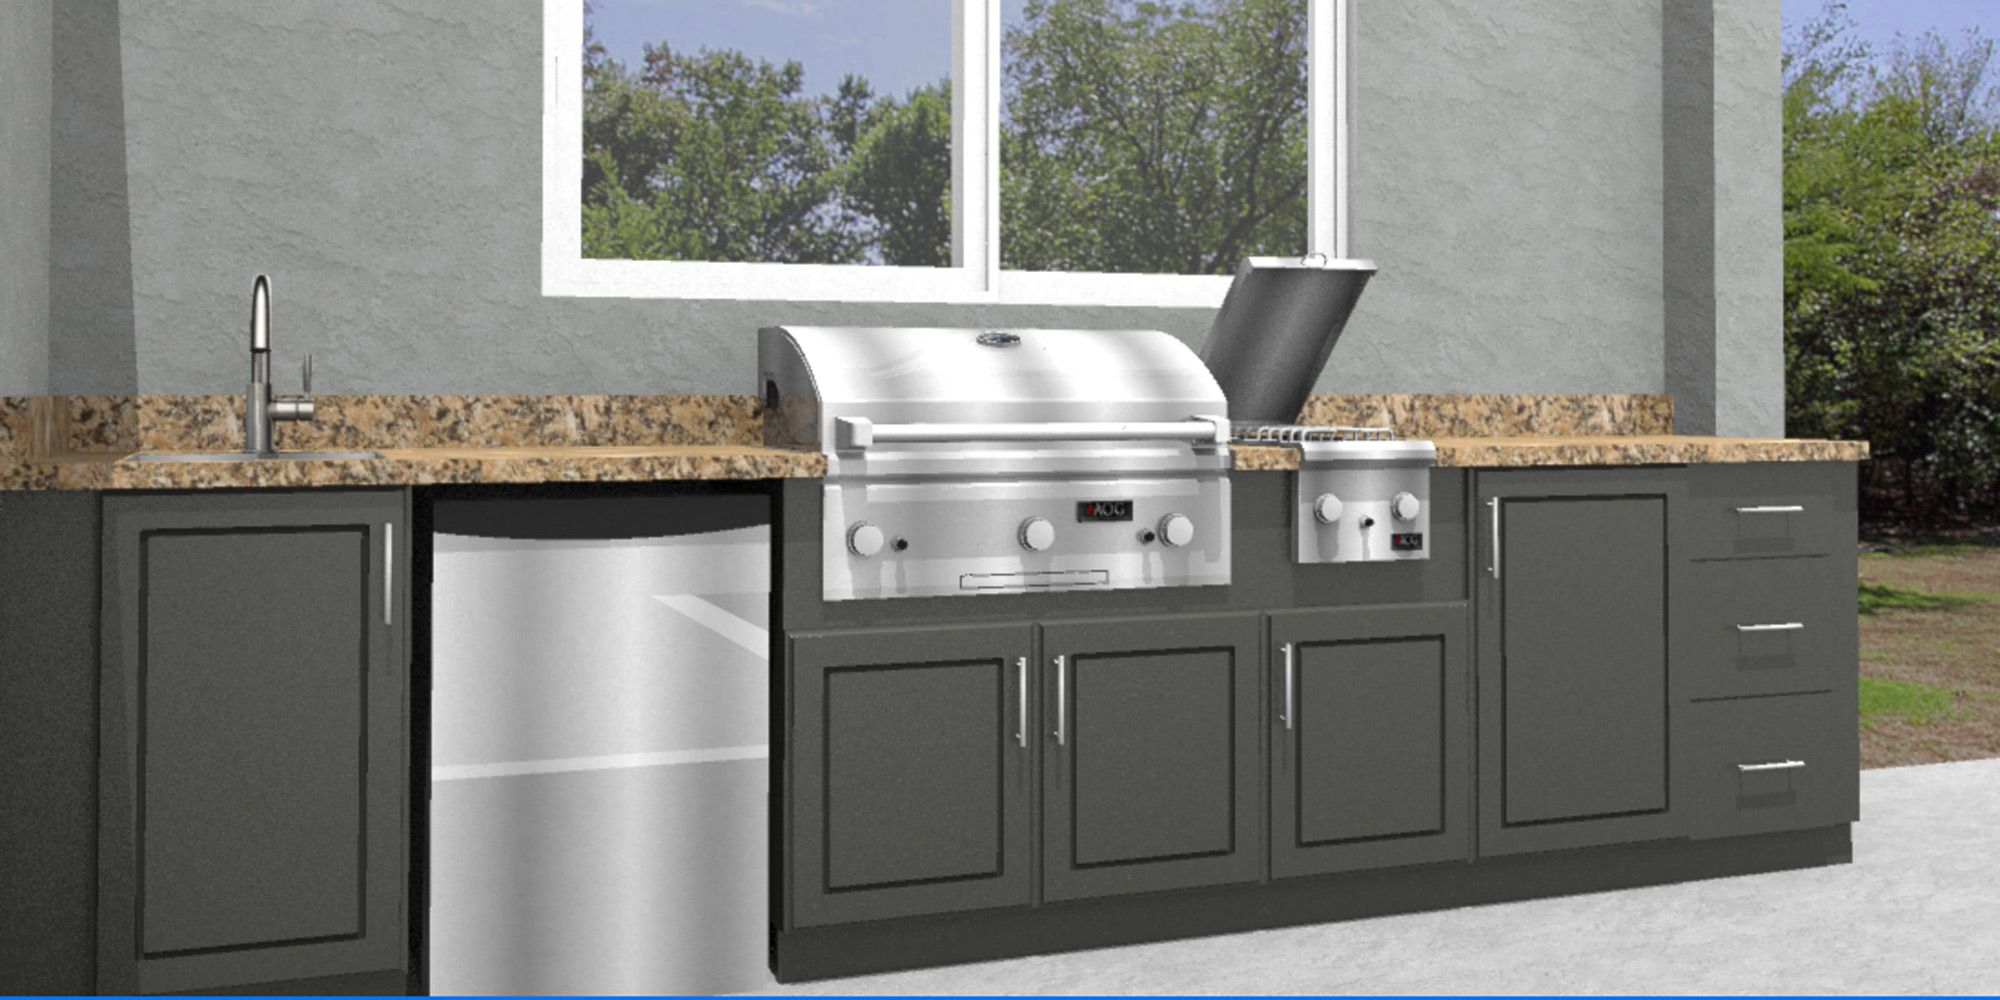 Outdoor Kitchen Cabinets With Sink Outdoor Kitchen Cabinets Outdoor Kitchen Outdoor Kitchen Appliances